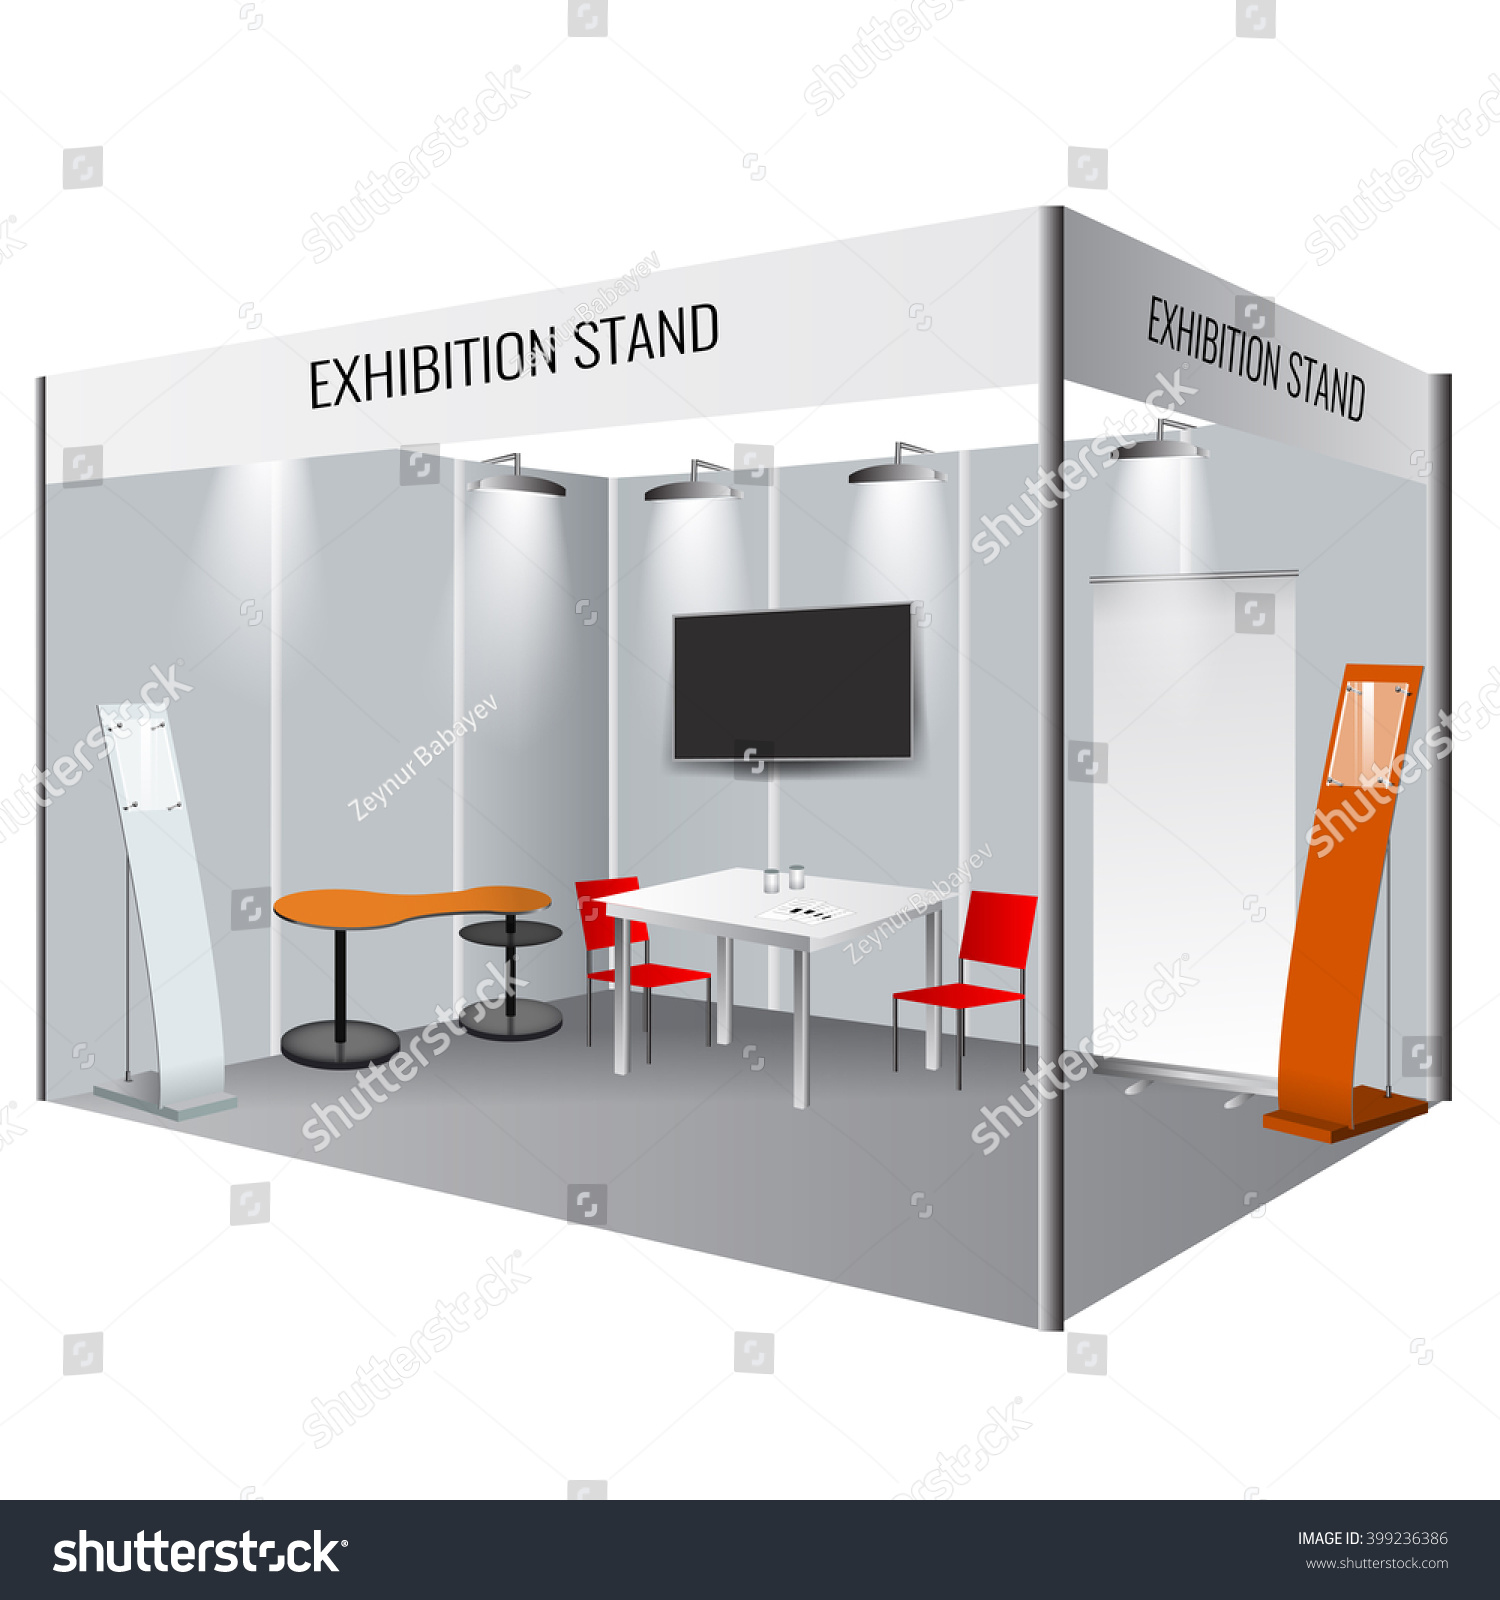 Exhibition Stand Roll Up : Illustrated unique creative exhibition stand display stock